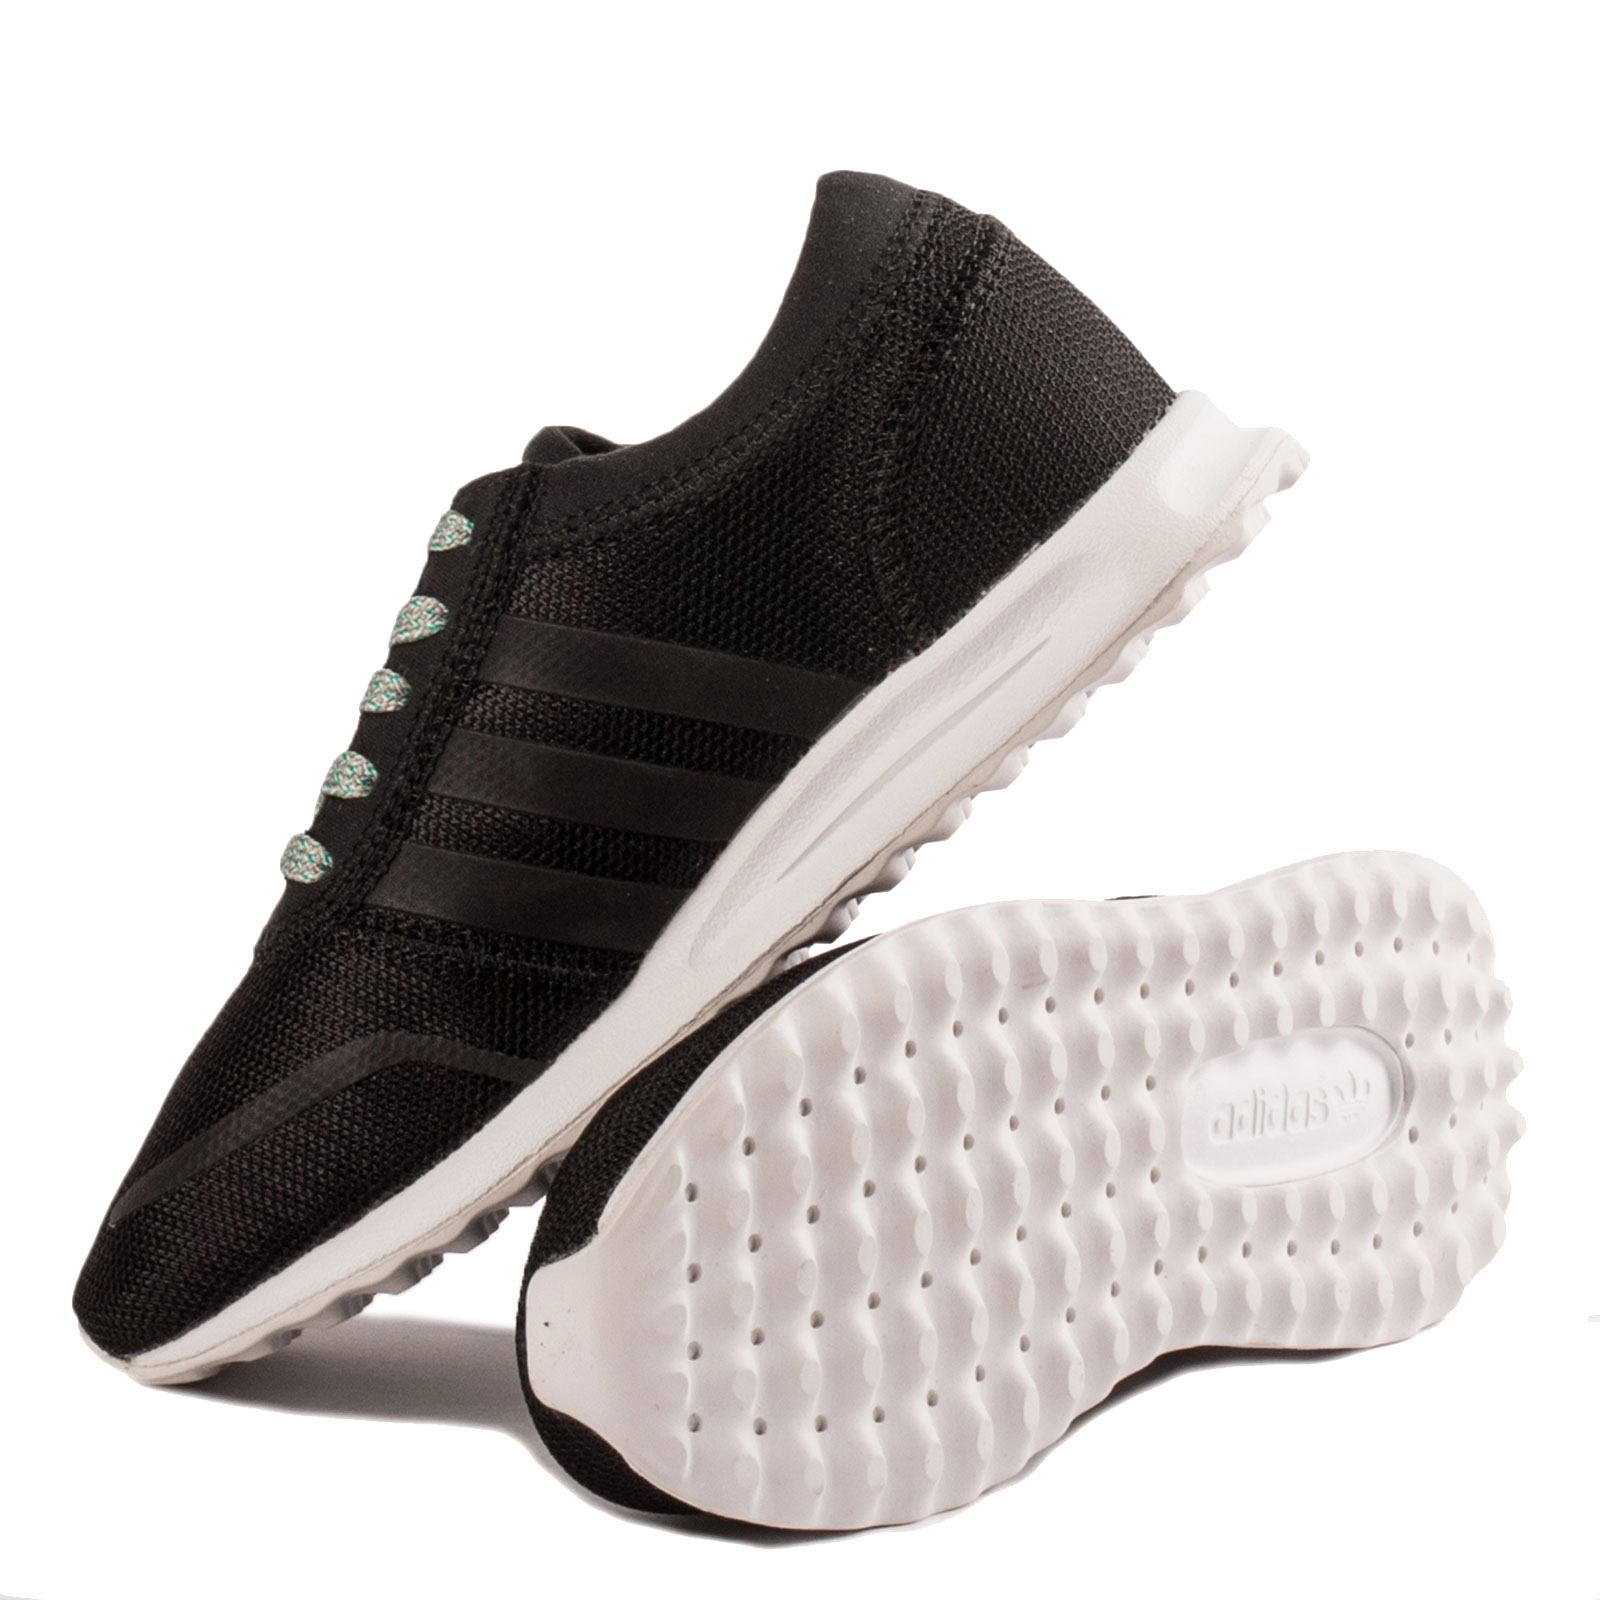 Adidas baseball shoes BA7085 walking shoes adidas adidas 350 bb5287 sneakers for male tmallfs kedsfs